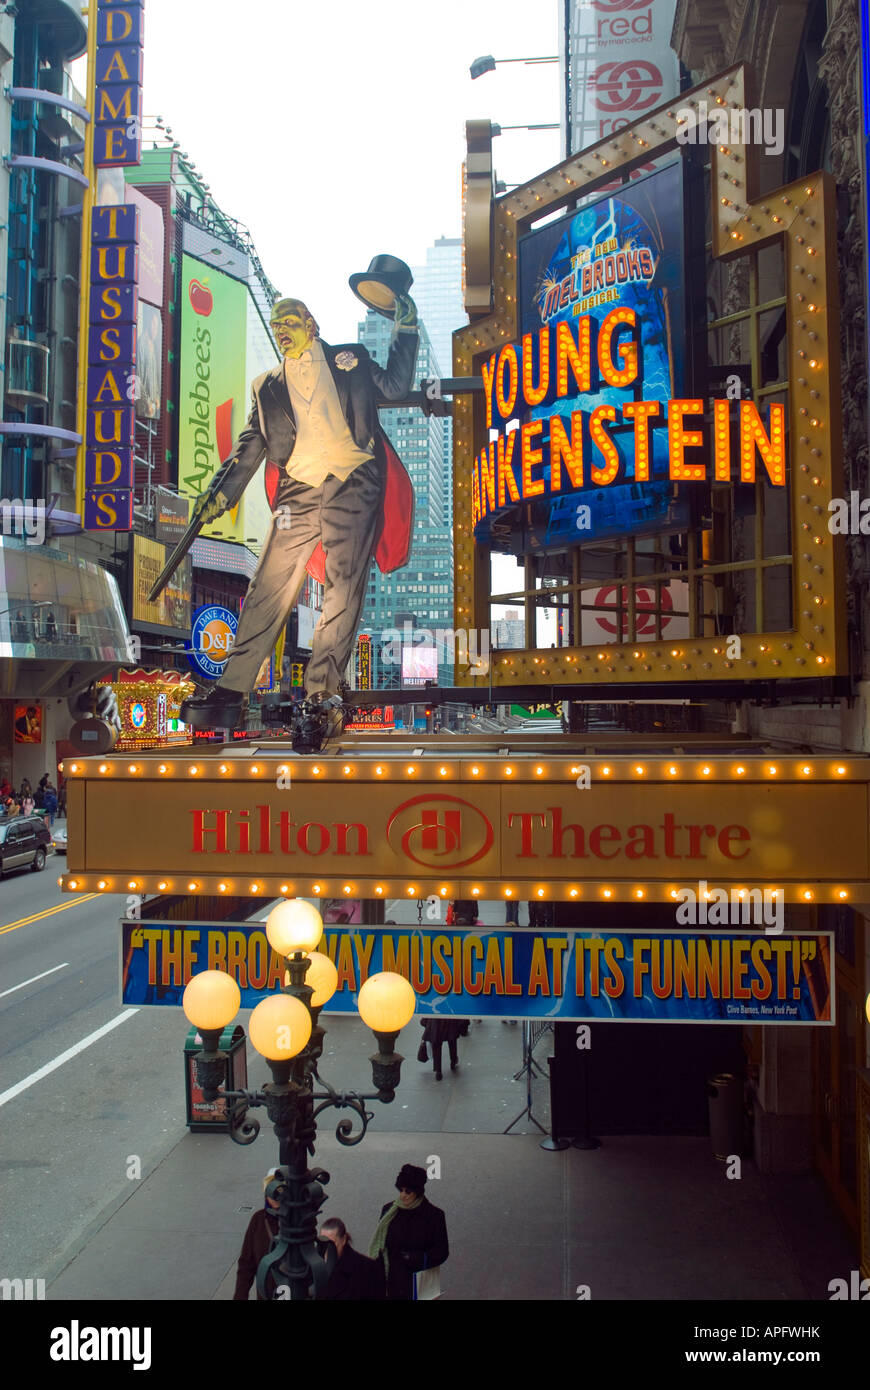 The marquee for the new Mel Brooks musical Young Frankenstein is seen on the Hilton Theatre on 42nd st in Times - Stock Image